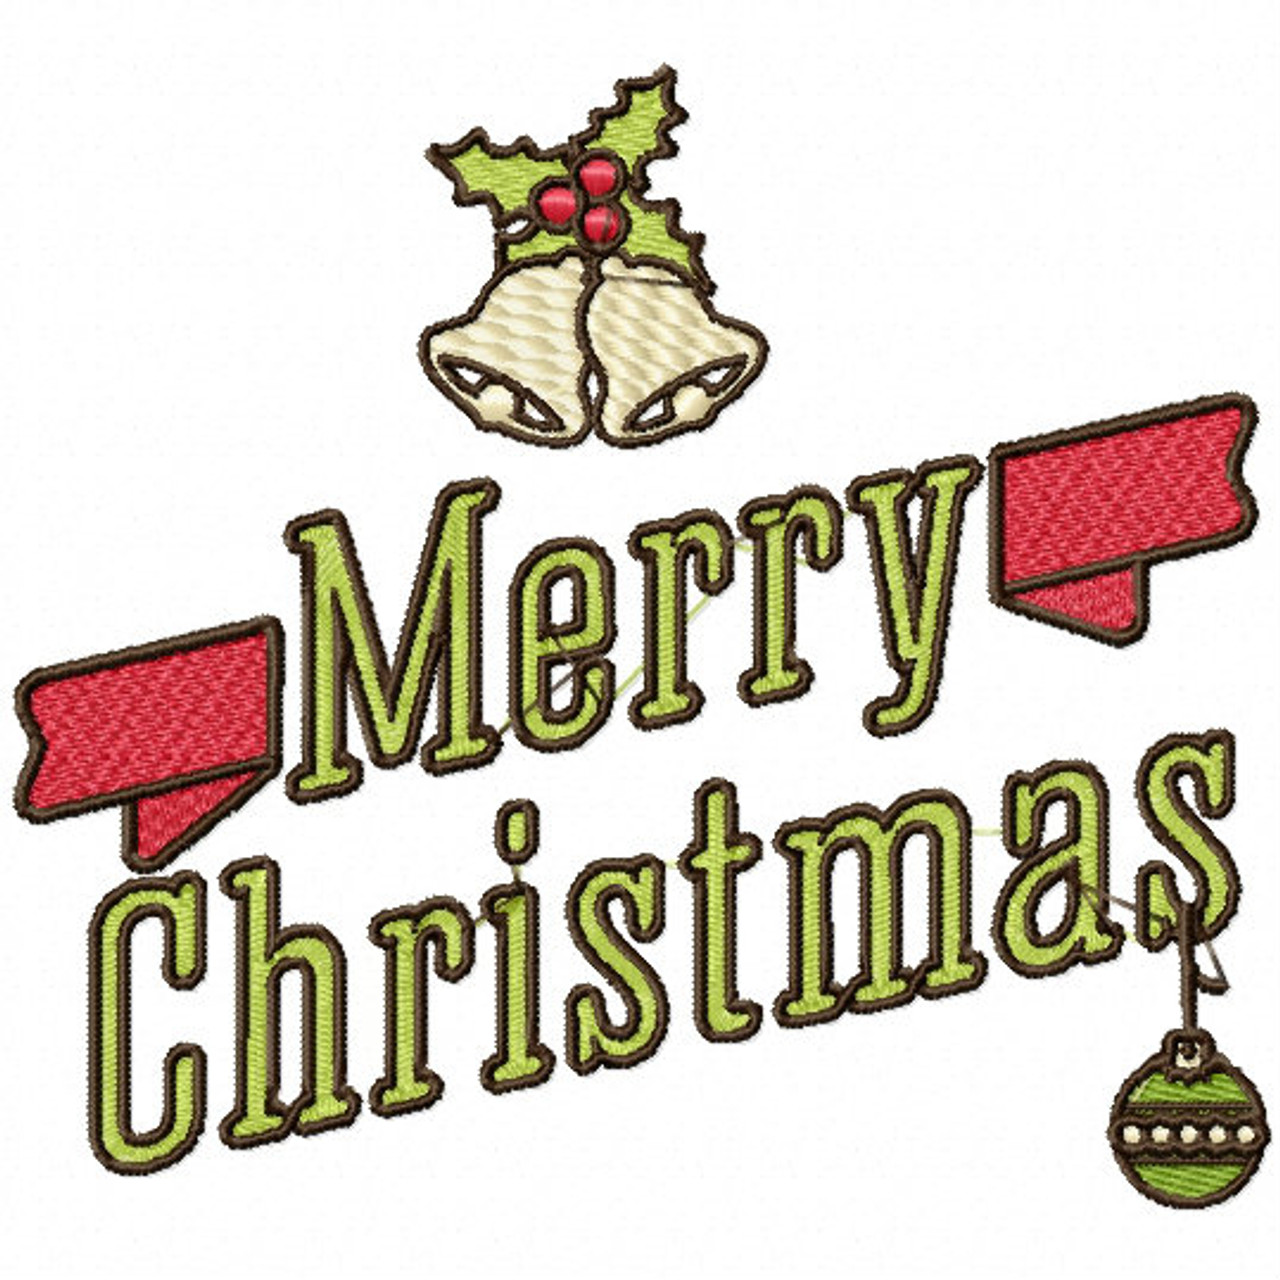 Merry Christmas Labels.Merry Christmas Christmas Labels 02 Machine Embroidery Design